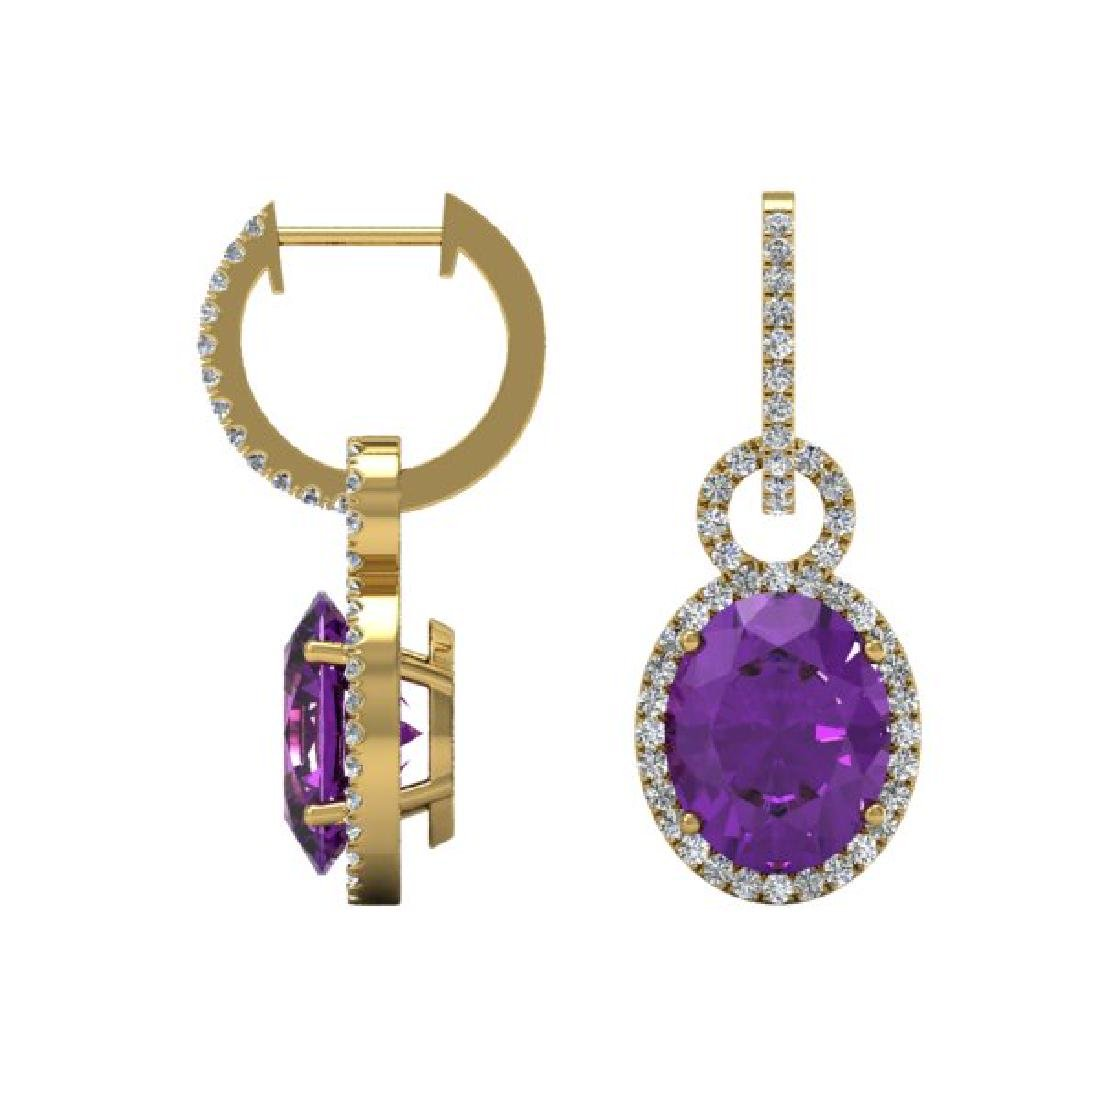 6 CTW Amethyst & Micro Pave Solitaire Halo VS/SI - 2